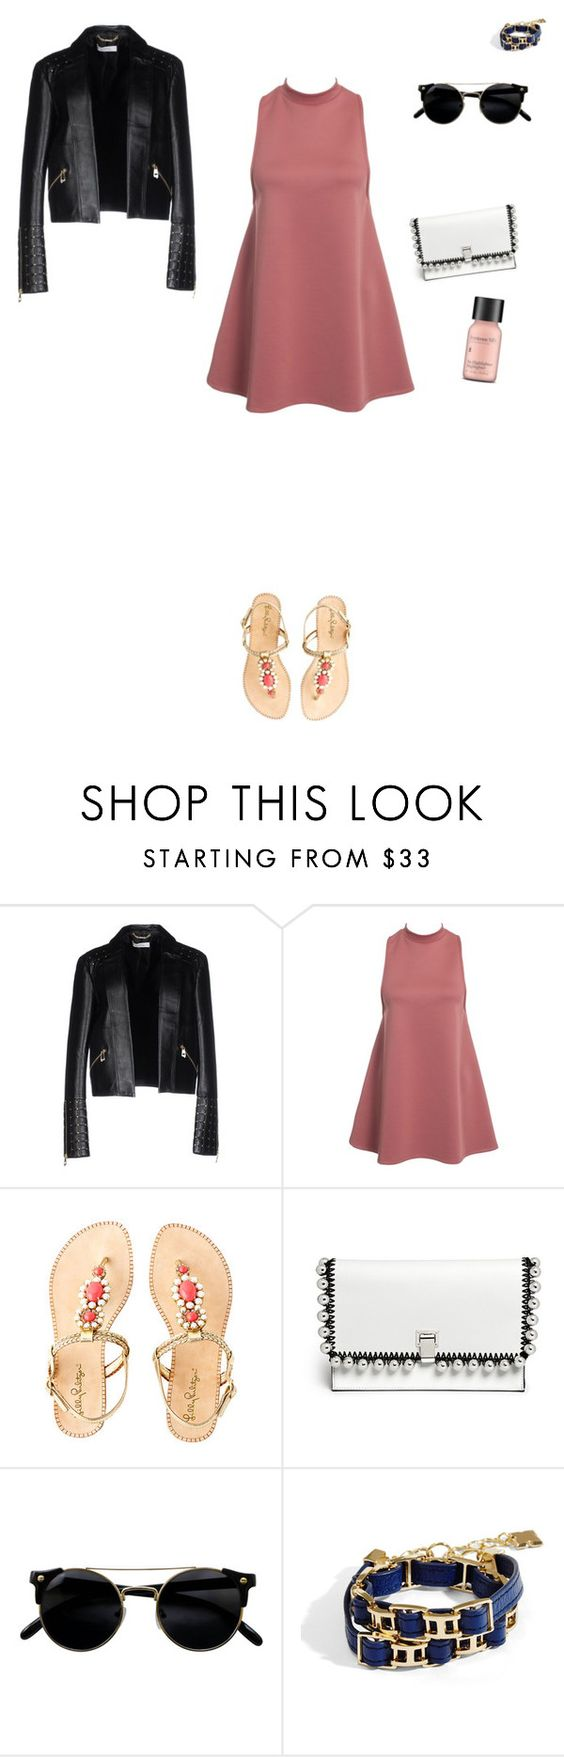 """Untitled #2255"" by anamaria-zgimbau ❤ liked on Polyvore featuring Versace, Lilly Pulitzer, Proenza Schouler, BCBGMAXAZRIA and Perricone MD"